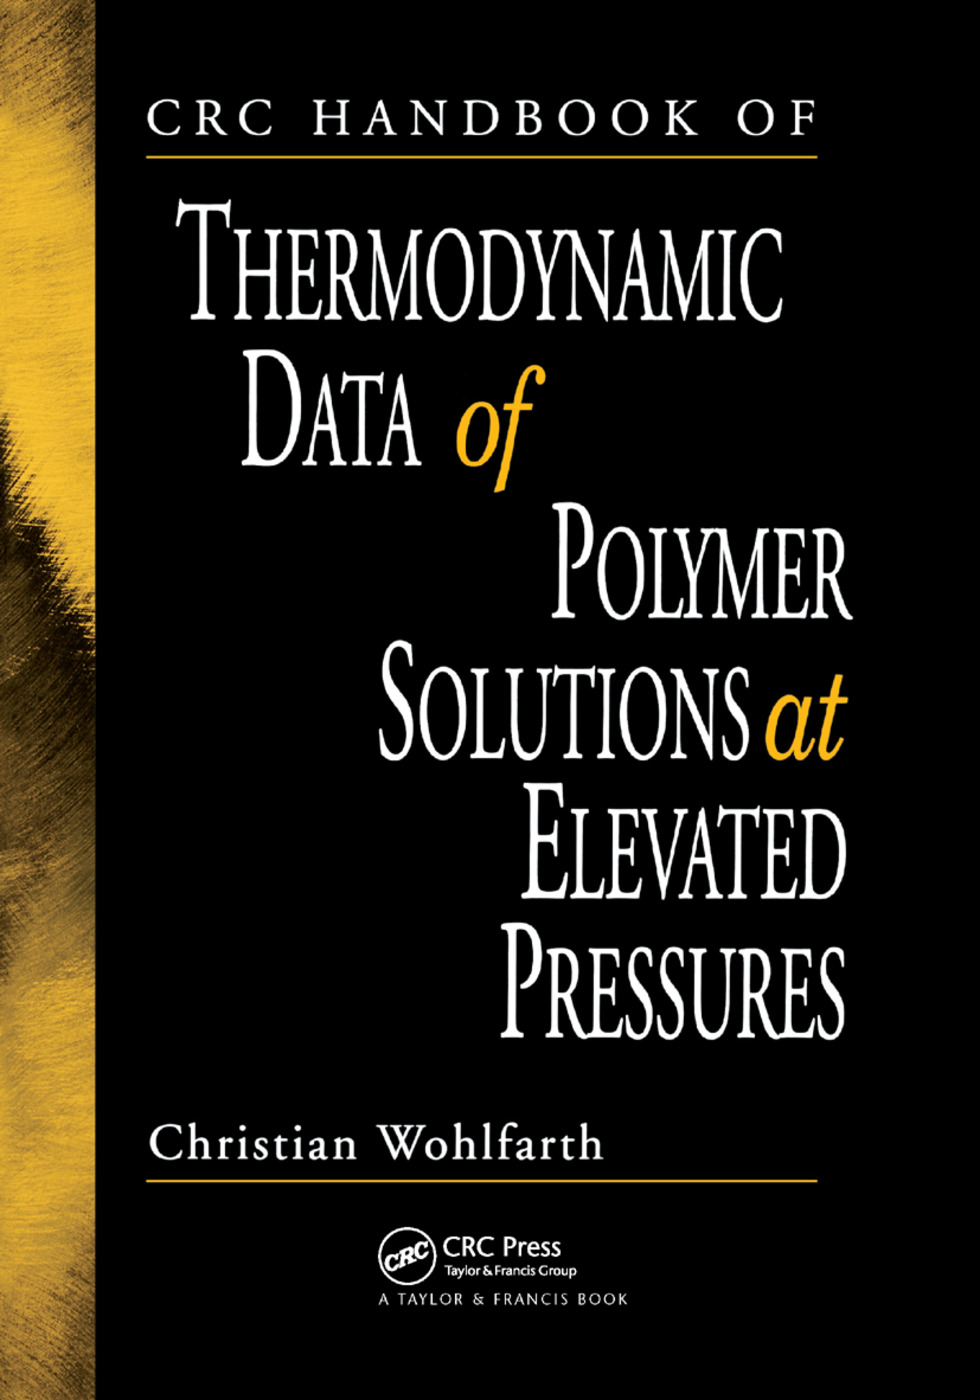 CRC Handbook of Thermodynamic Data of Polymer Solutions at Elevated Pressures: 1st Edition (Paperback) book cover